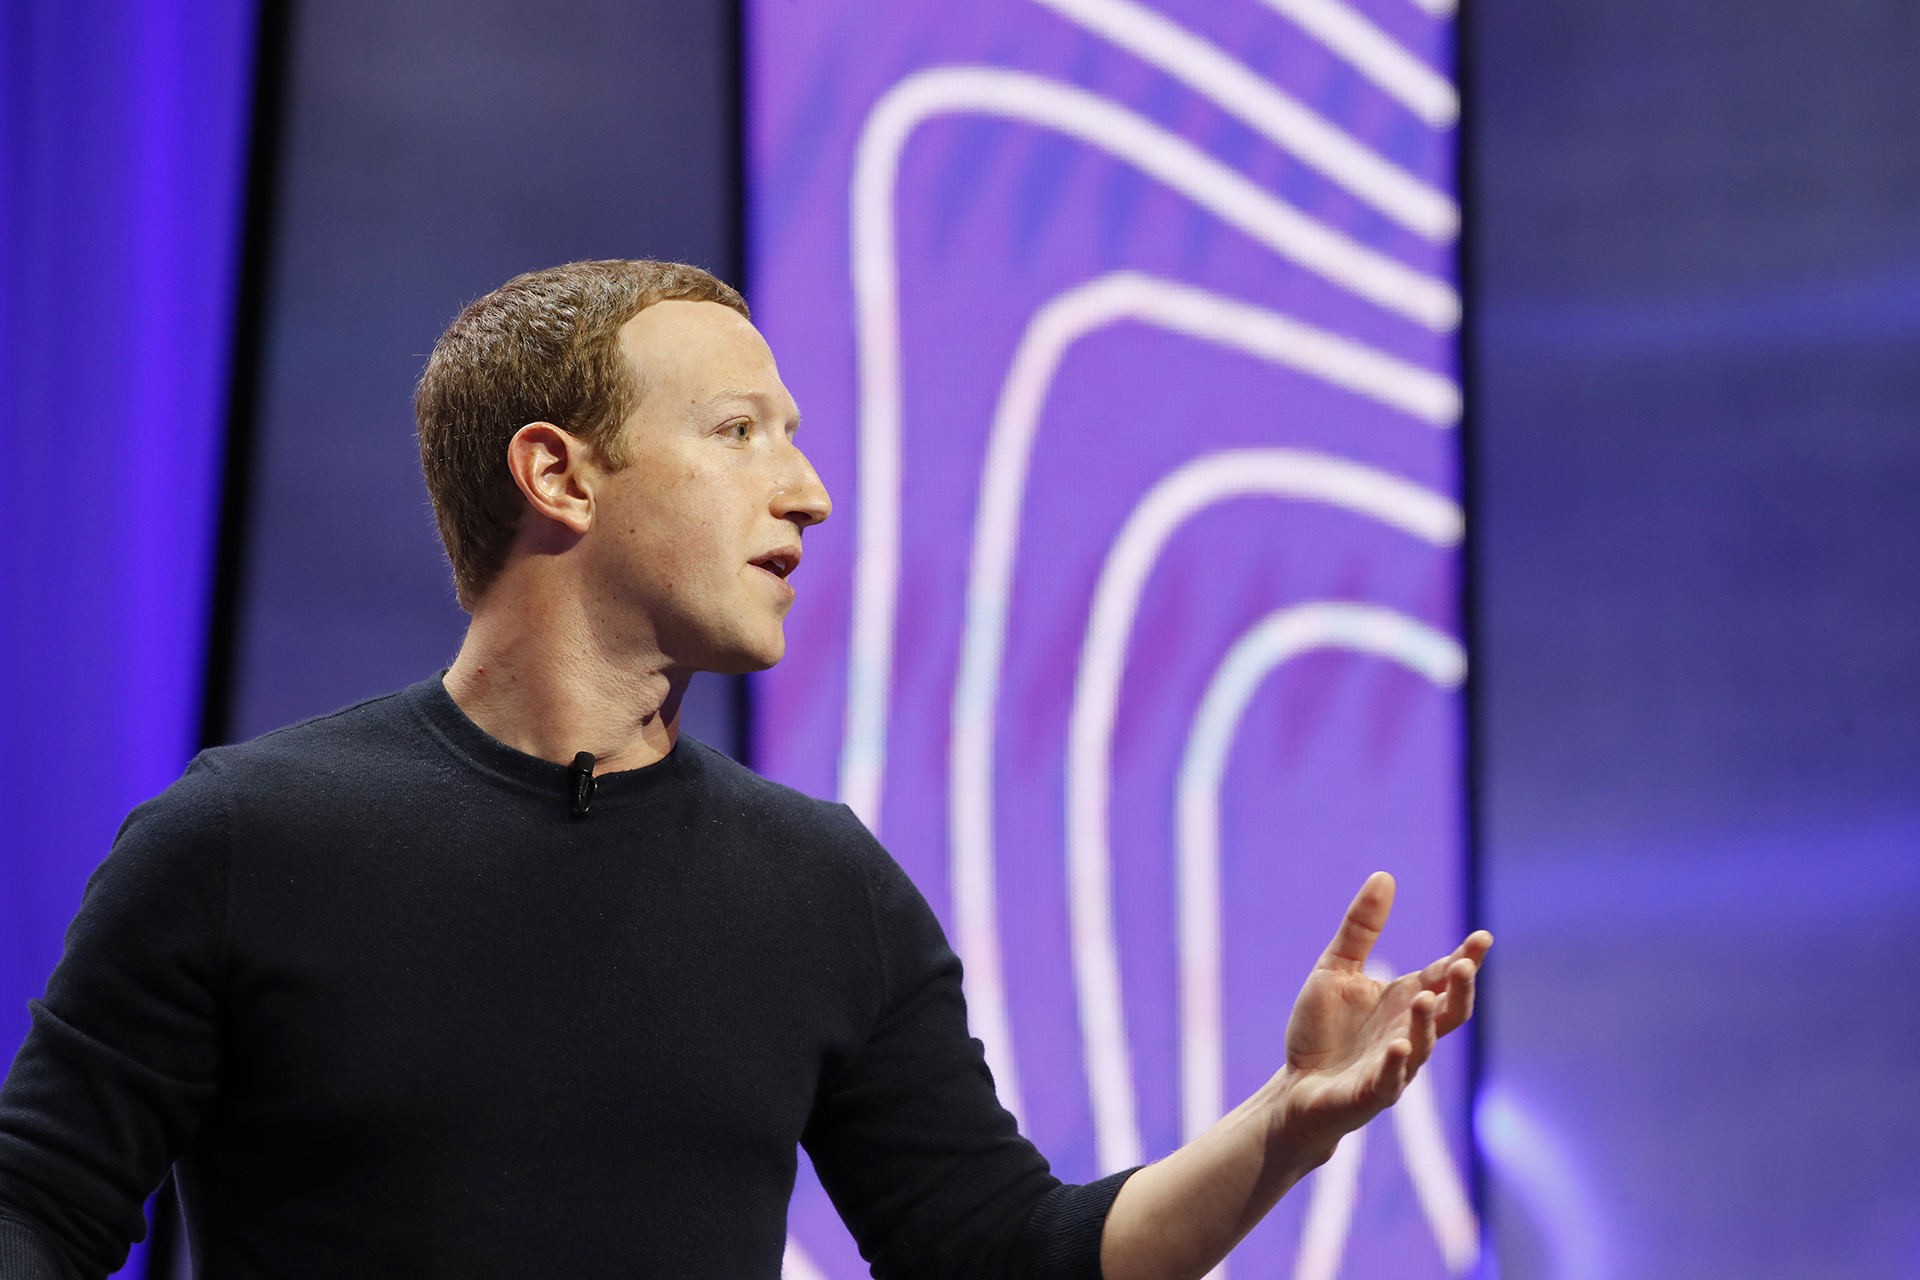 Project Amplify: Bad news for Facebook's good news plan